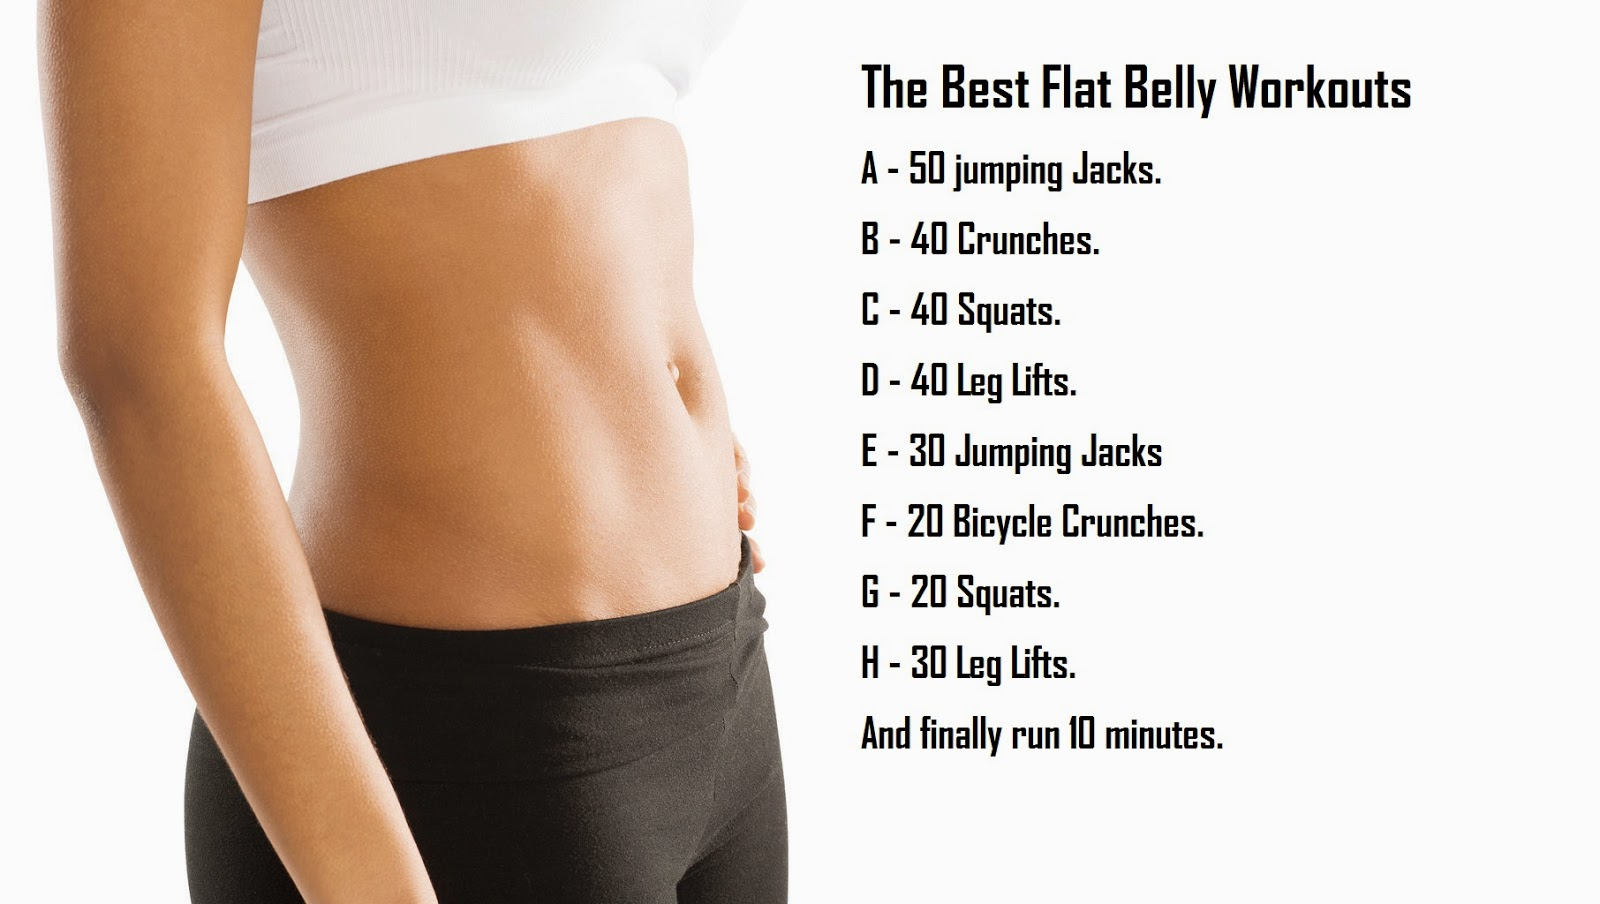 Detox diet to lose belly fat fast image 3